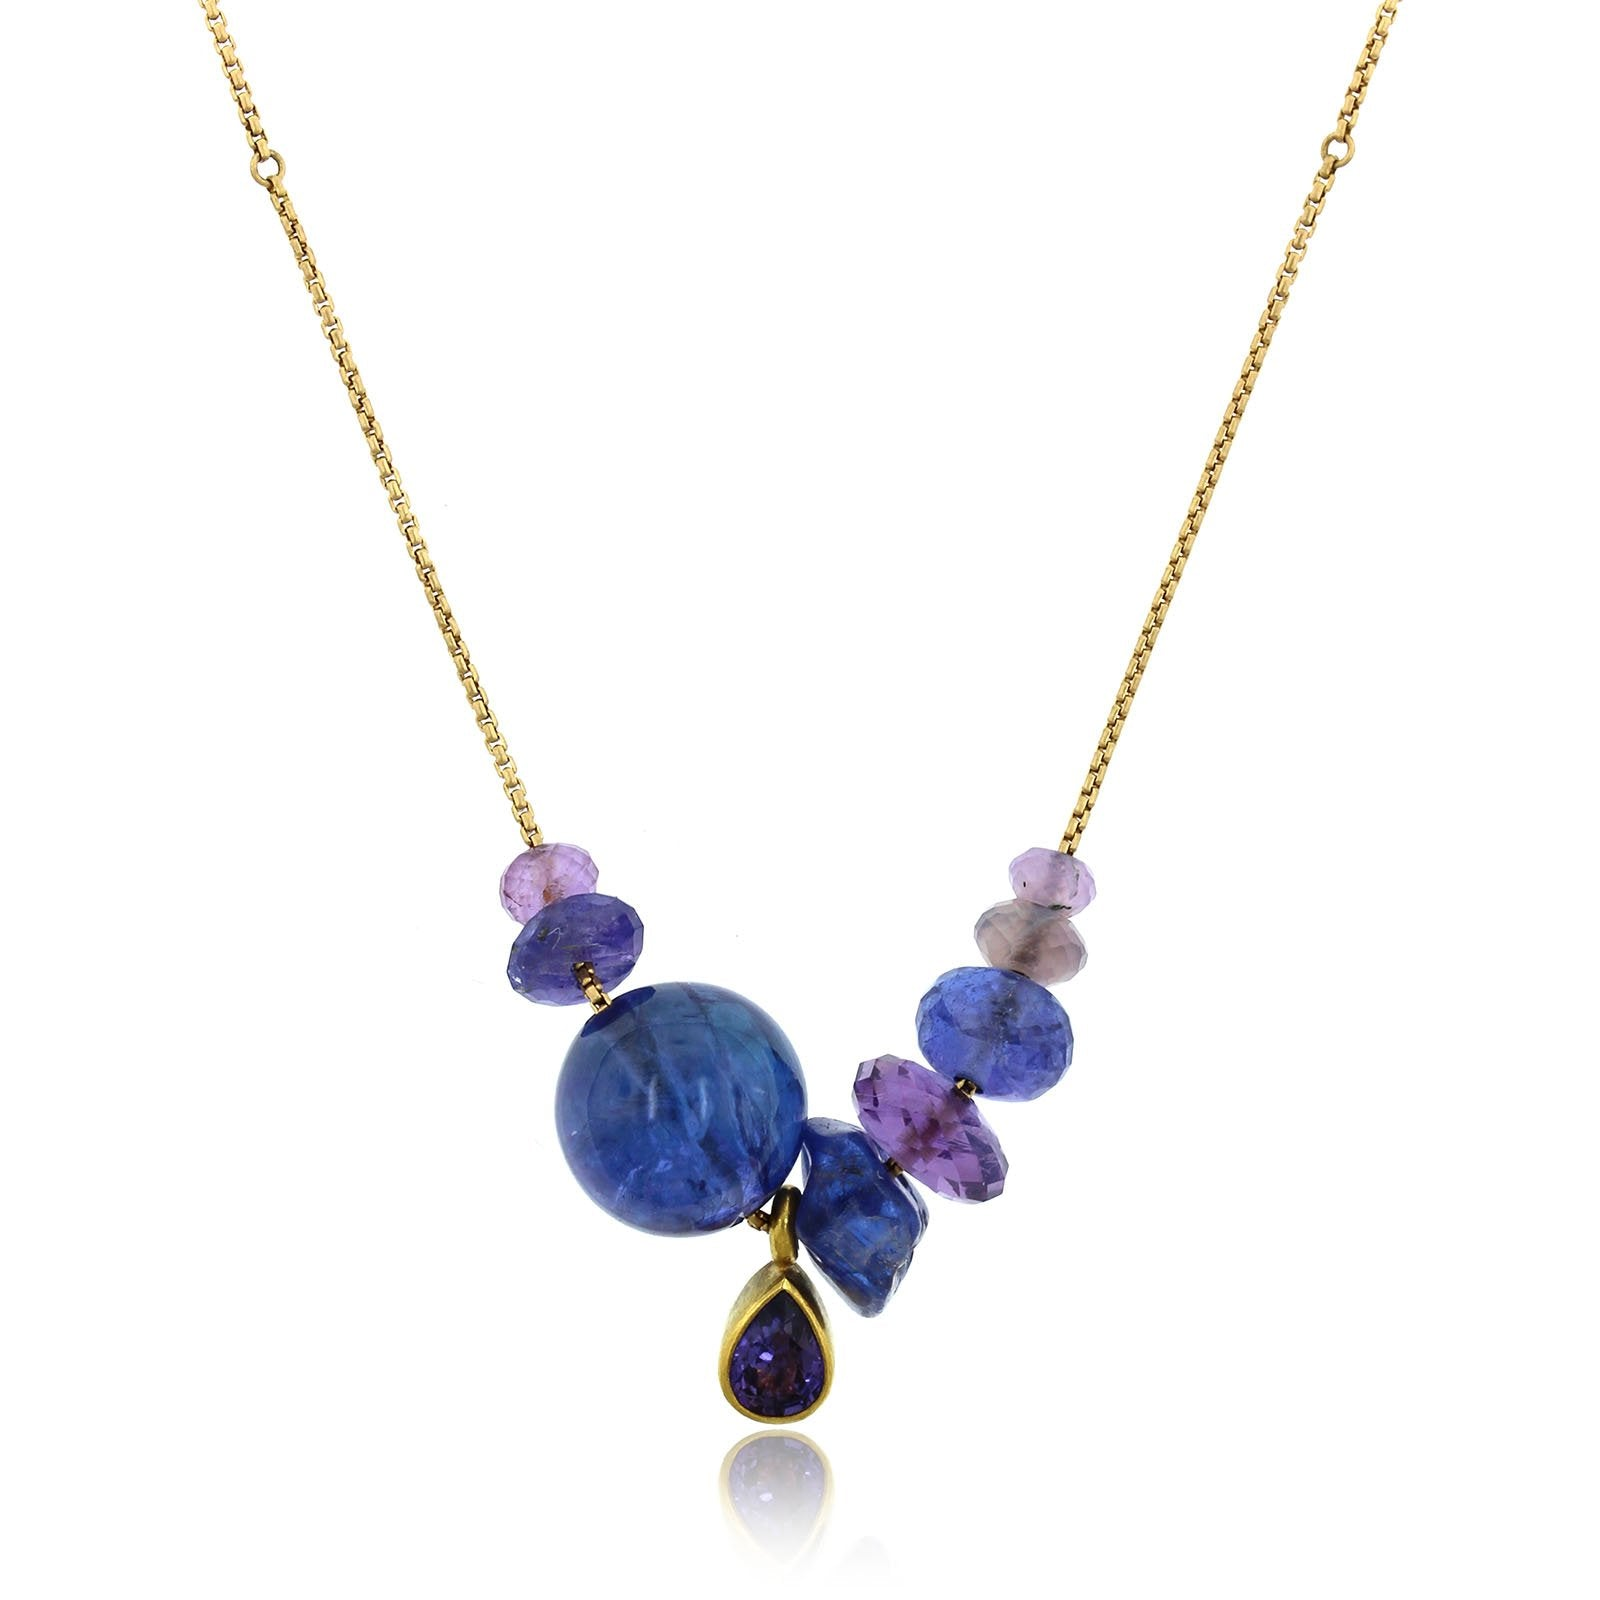 18K Yellow Gold Multi Stone Adjustable Necklace